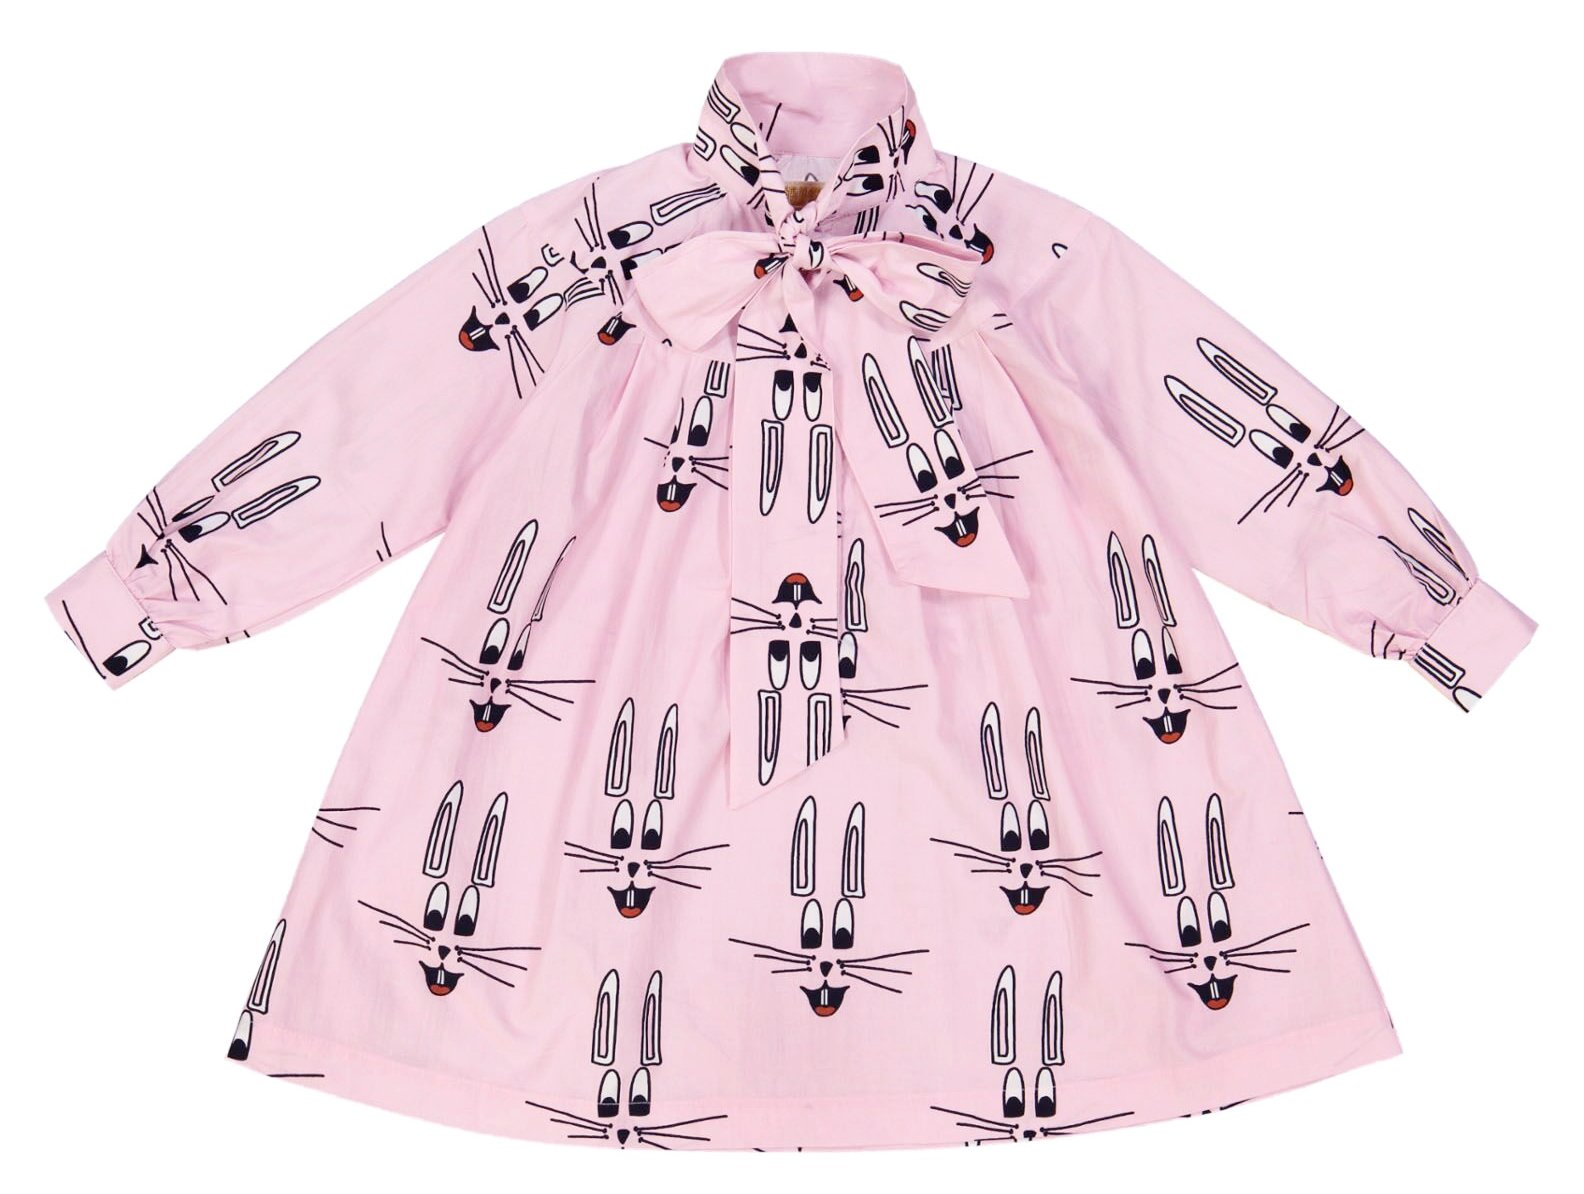 Hugo Loves Tiki Pink Bunny Collared Dress on DLK | designlifekids.com